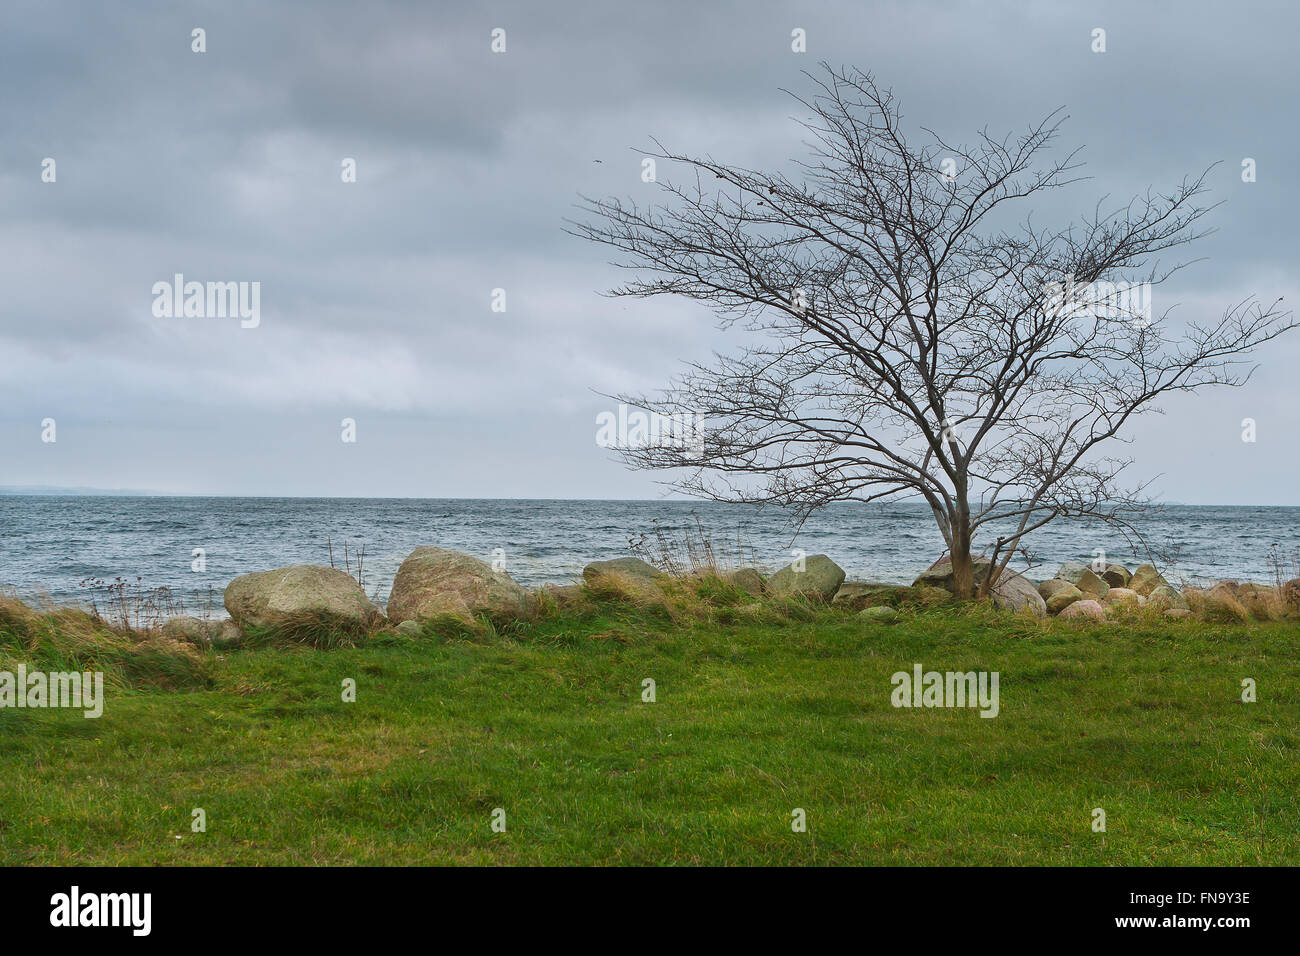 Lonely Leafless Tree at Seashore in Windy Weather - Stock Image